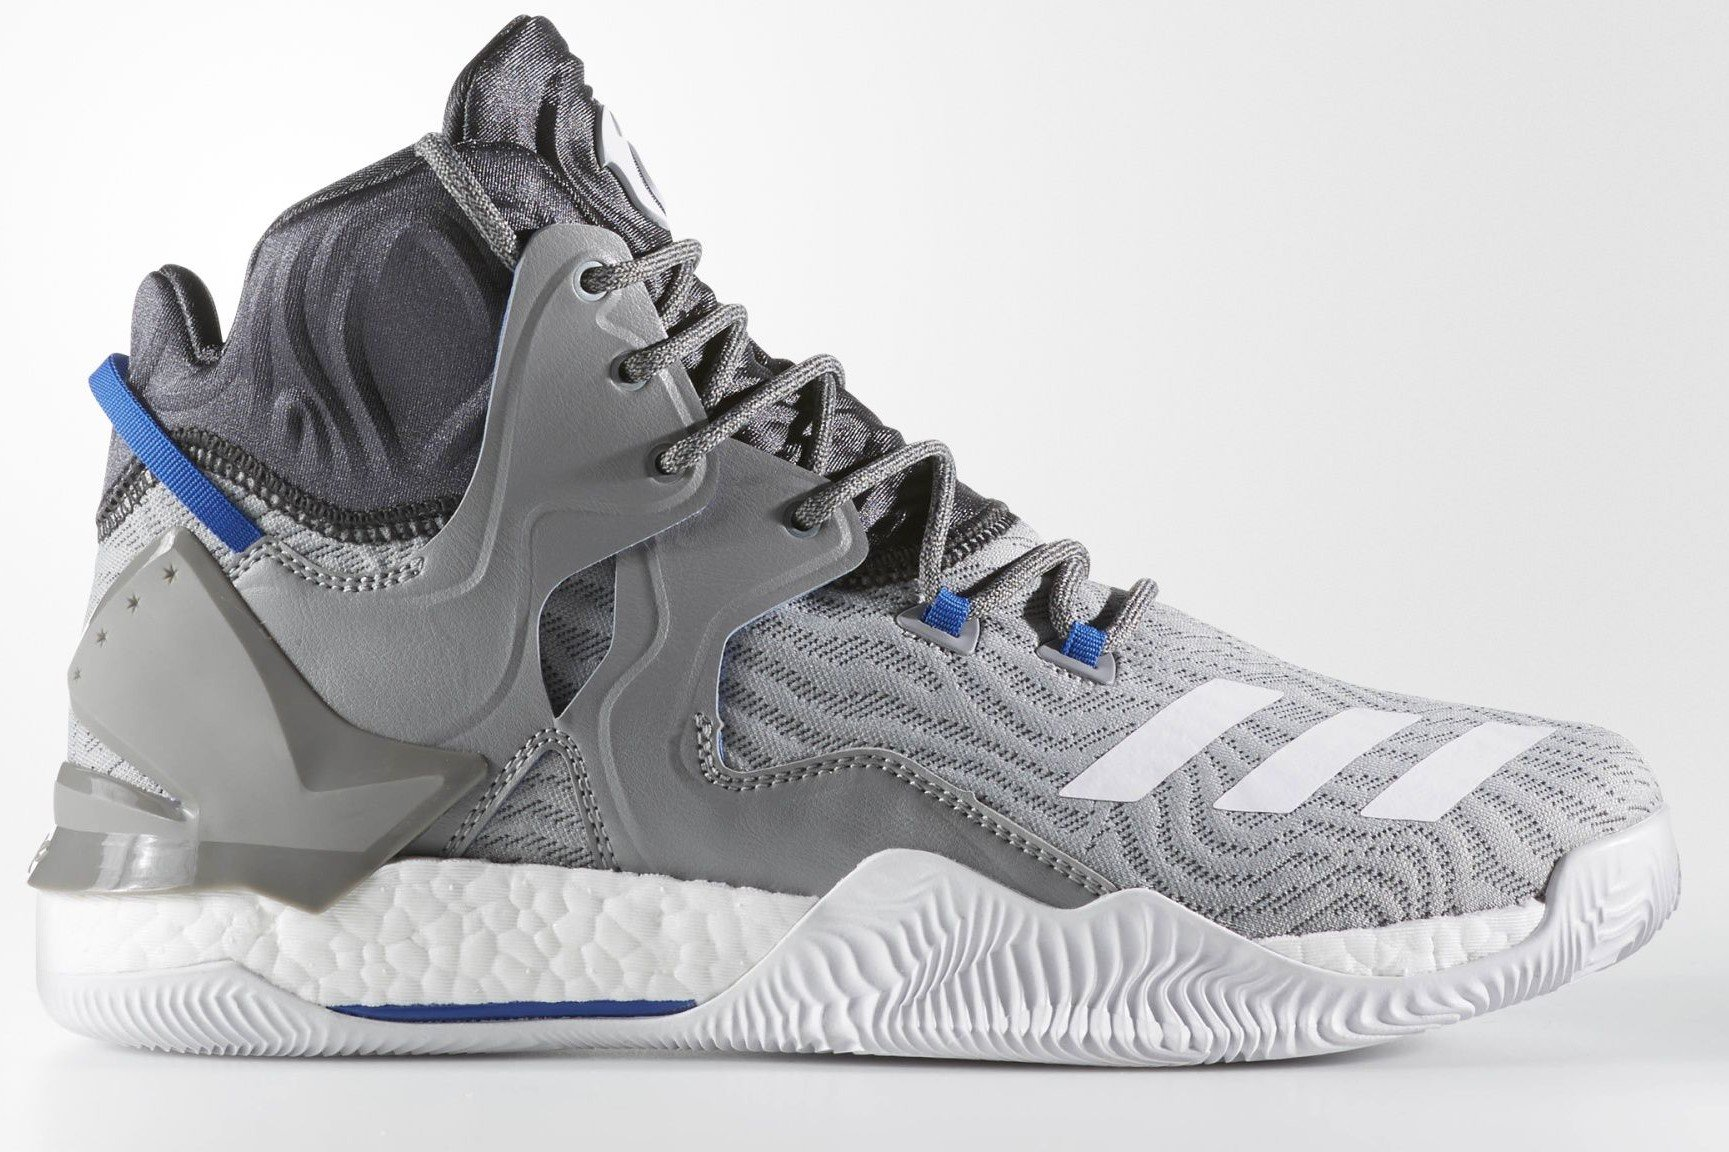 Adidas Men's Rose 7: Best Wide Basketball Shoes